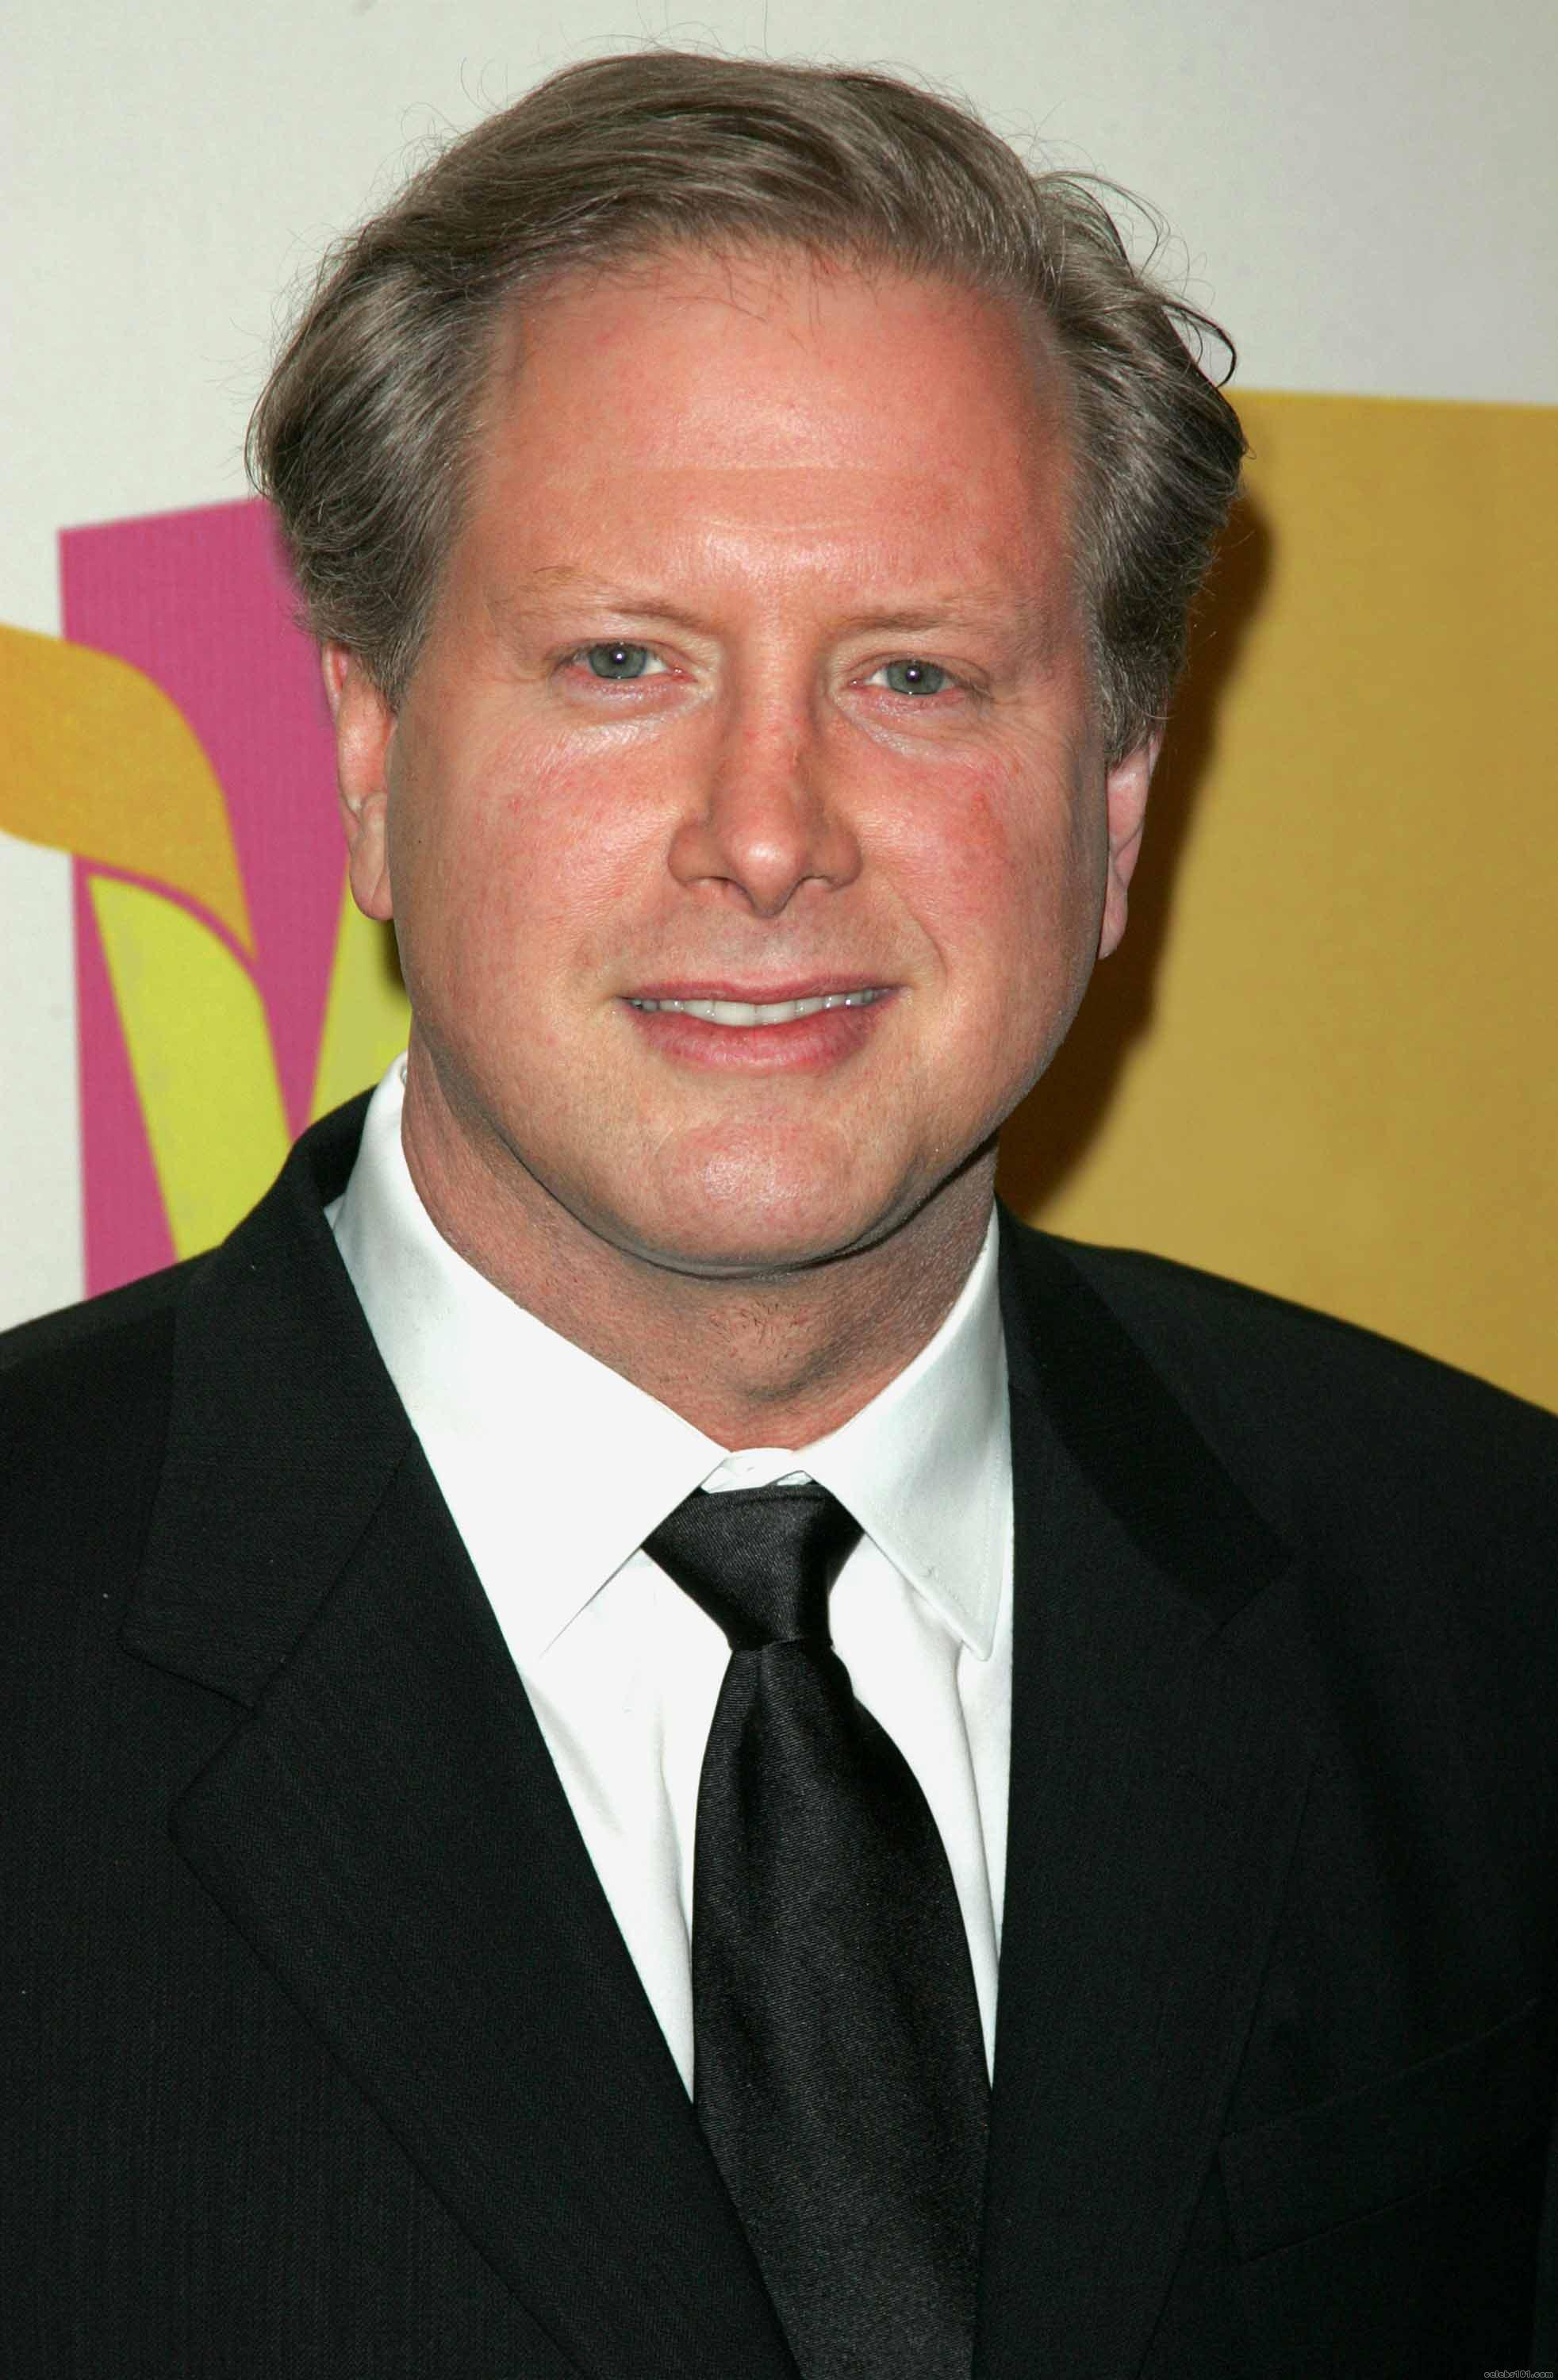 darrell hammond height